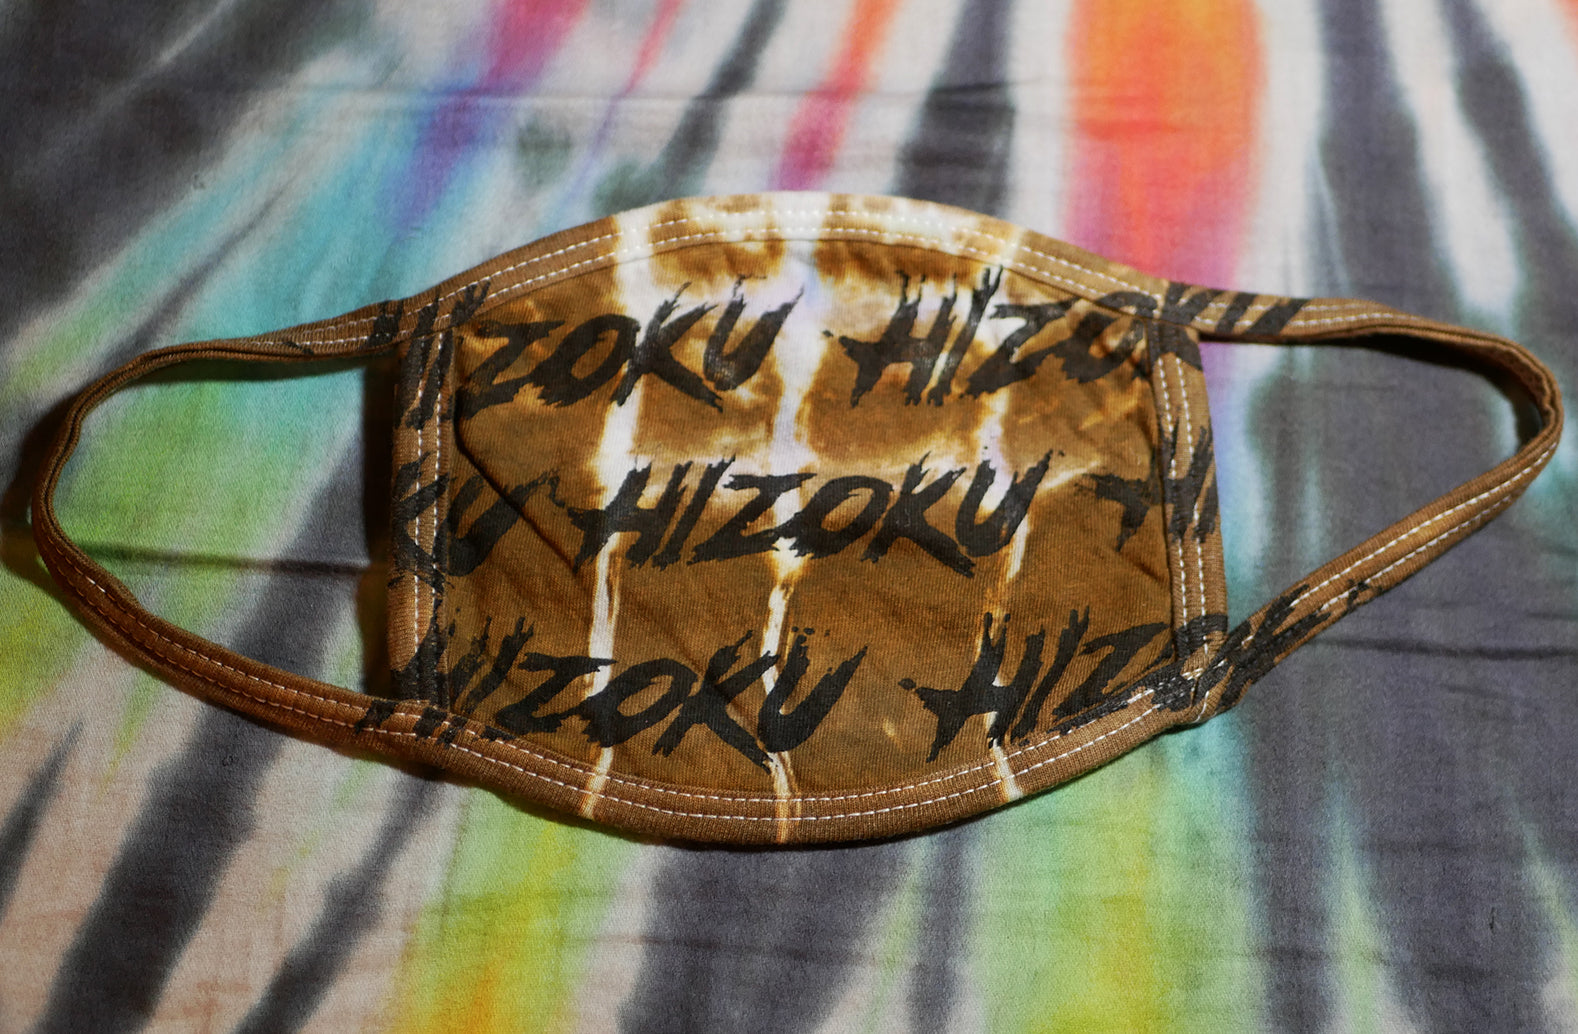 """HIZOKU STAMP MASK - BRONZE"" Hand-Stamped & Tie-Dyed Cotton Face Mask (Limited Quantity)"